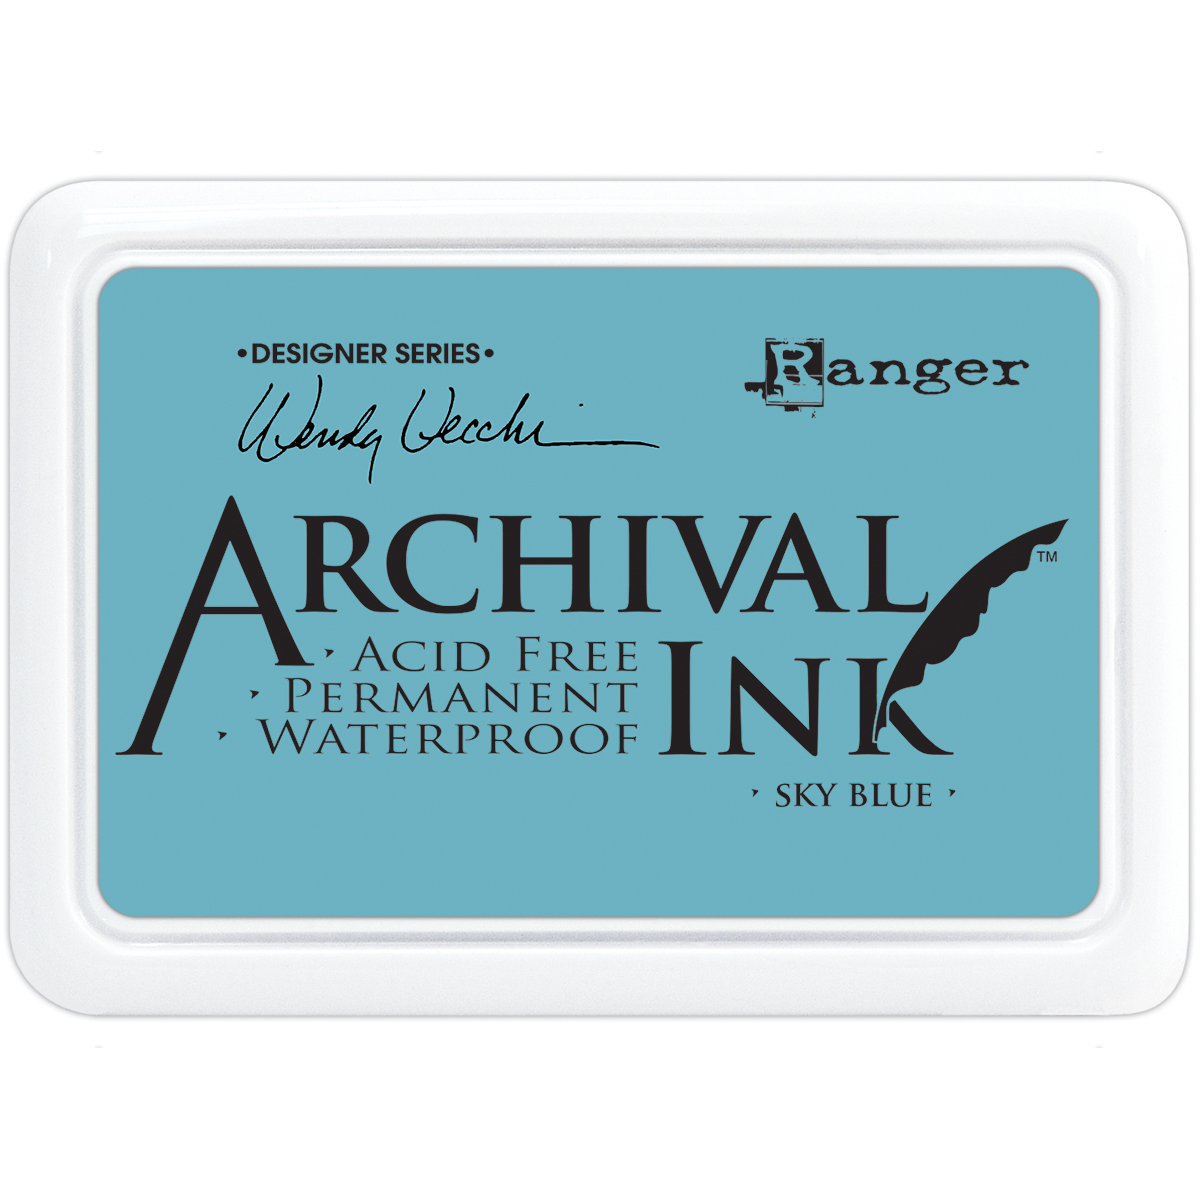 Archival Ink - Sky Blue